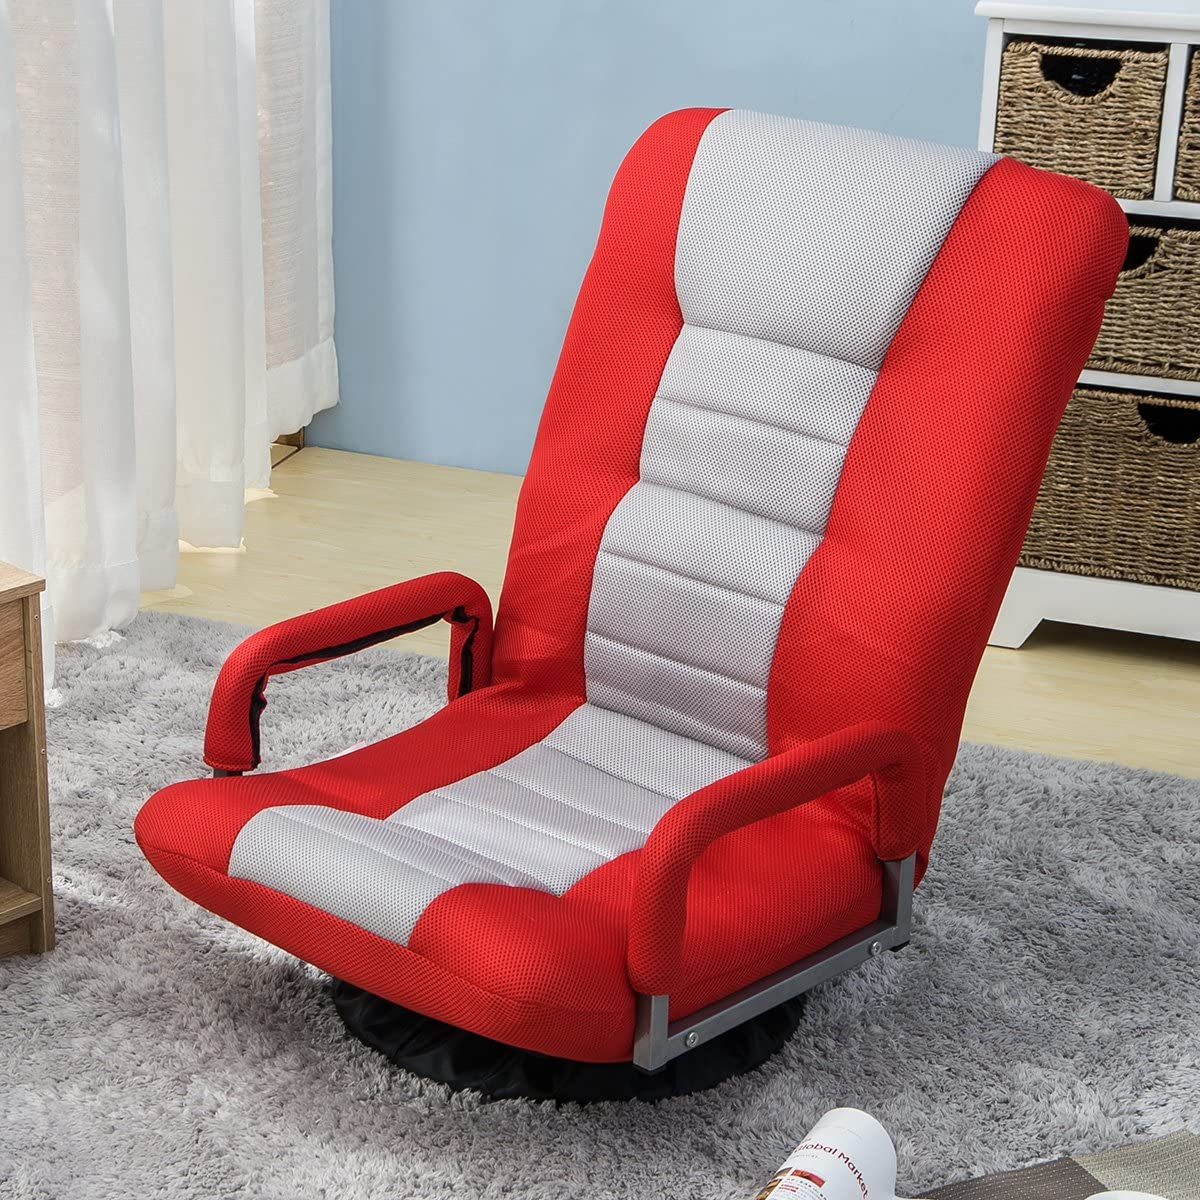 Swivel Gaming Floor Chair, Folding Lazy Sofa Lounger with Armrests and Adjustable Backrest, Red